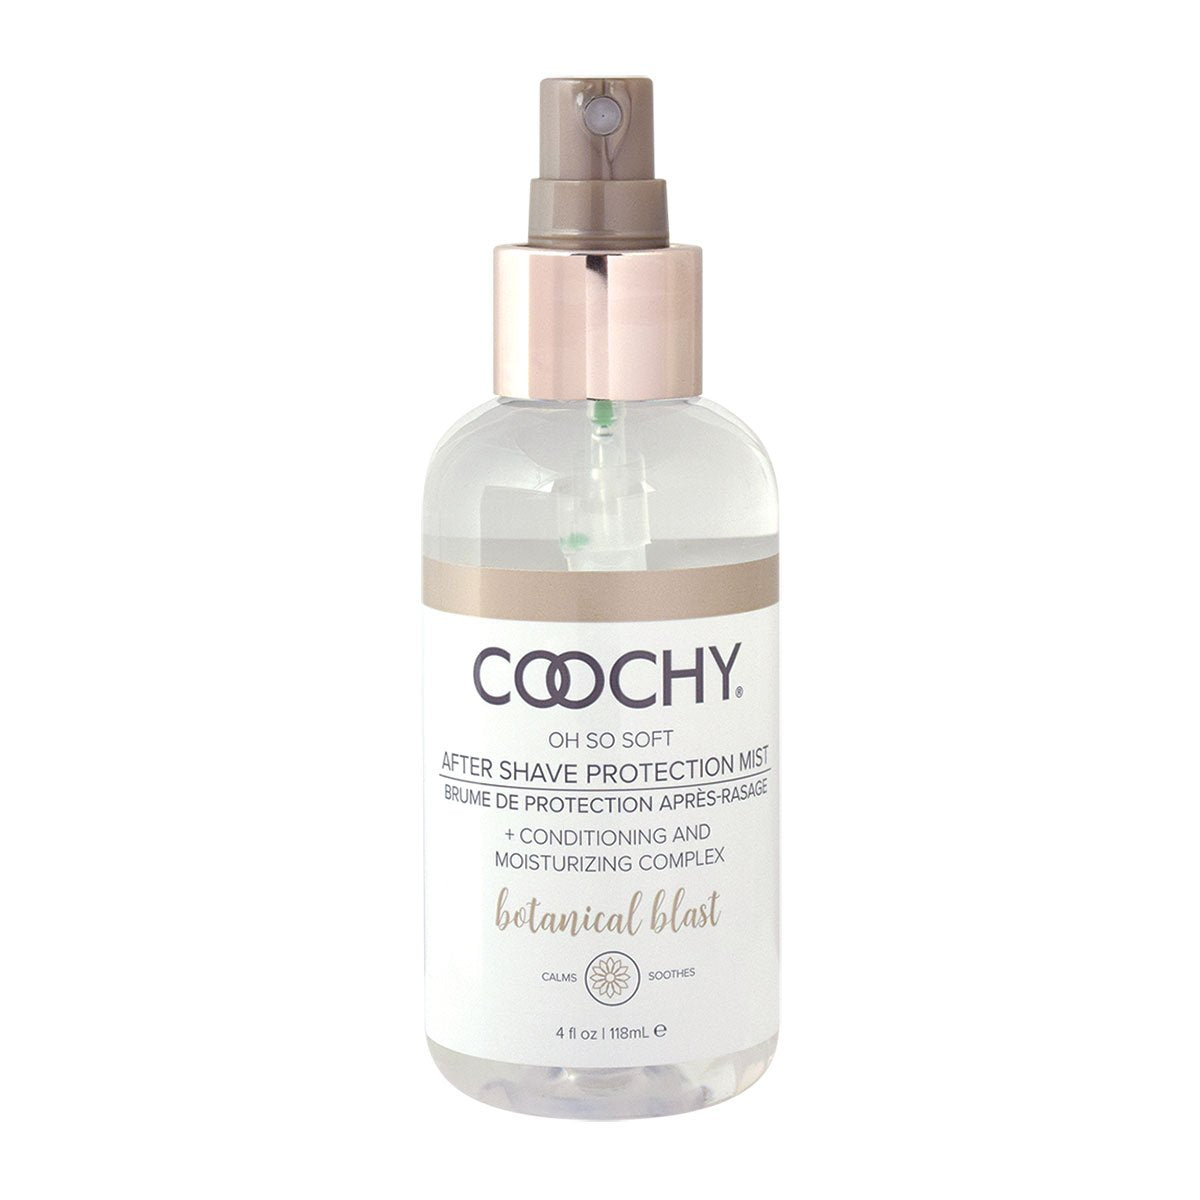 Coochy After Shave Protection Mist Botanical Blast 4oz